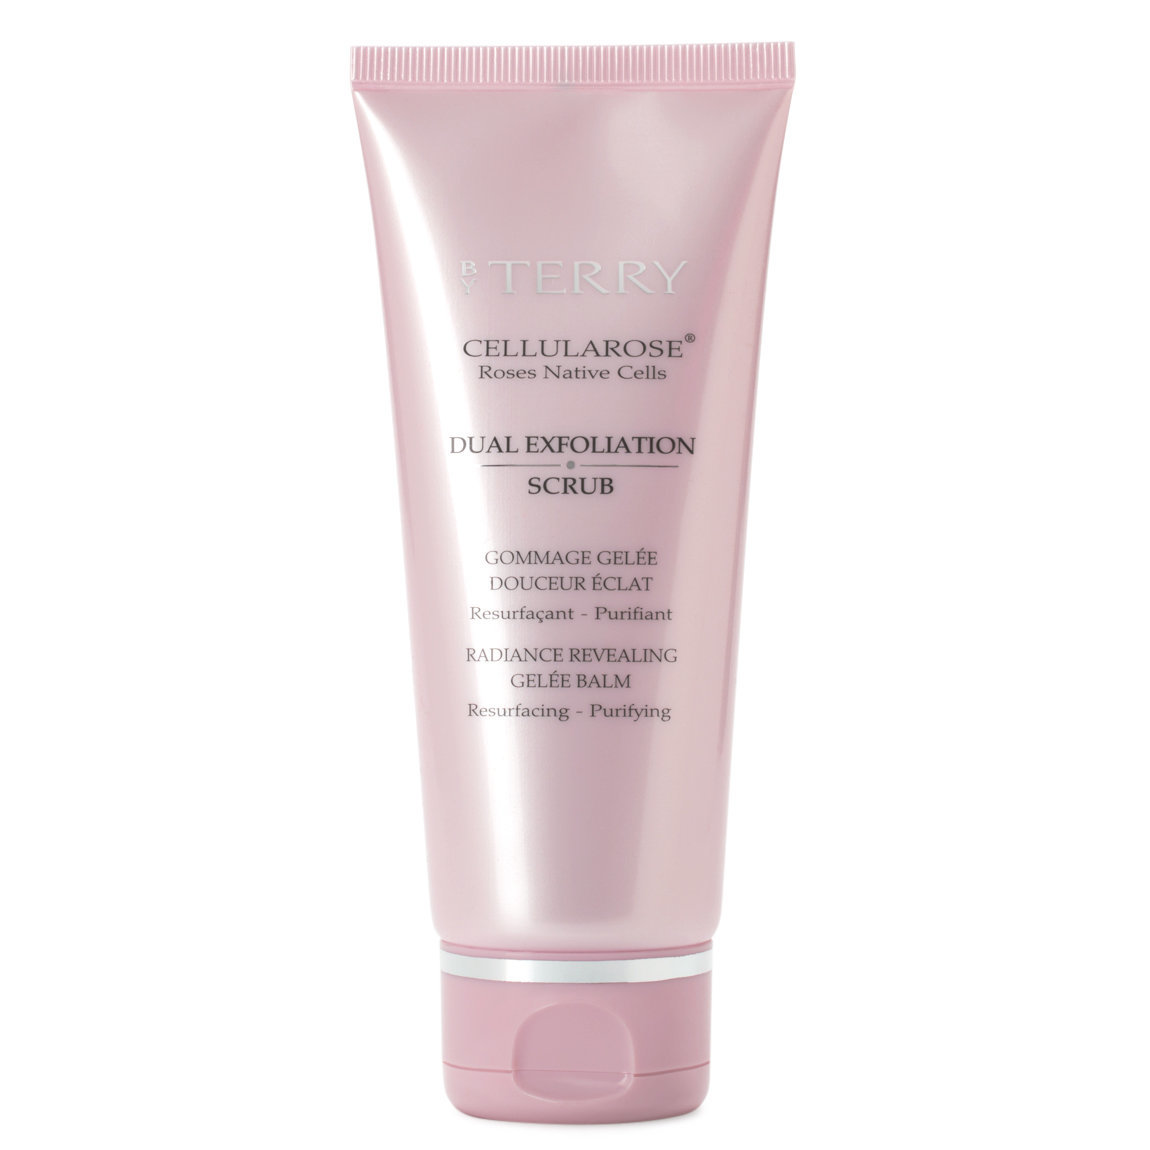 BY TERRY Cellularose Dual Exfoliation Scrub alternative view 1 - product swatch.